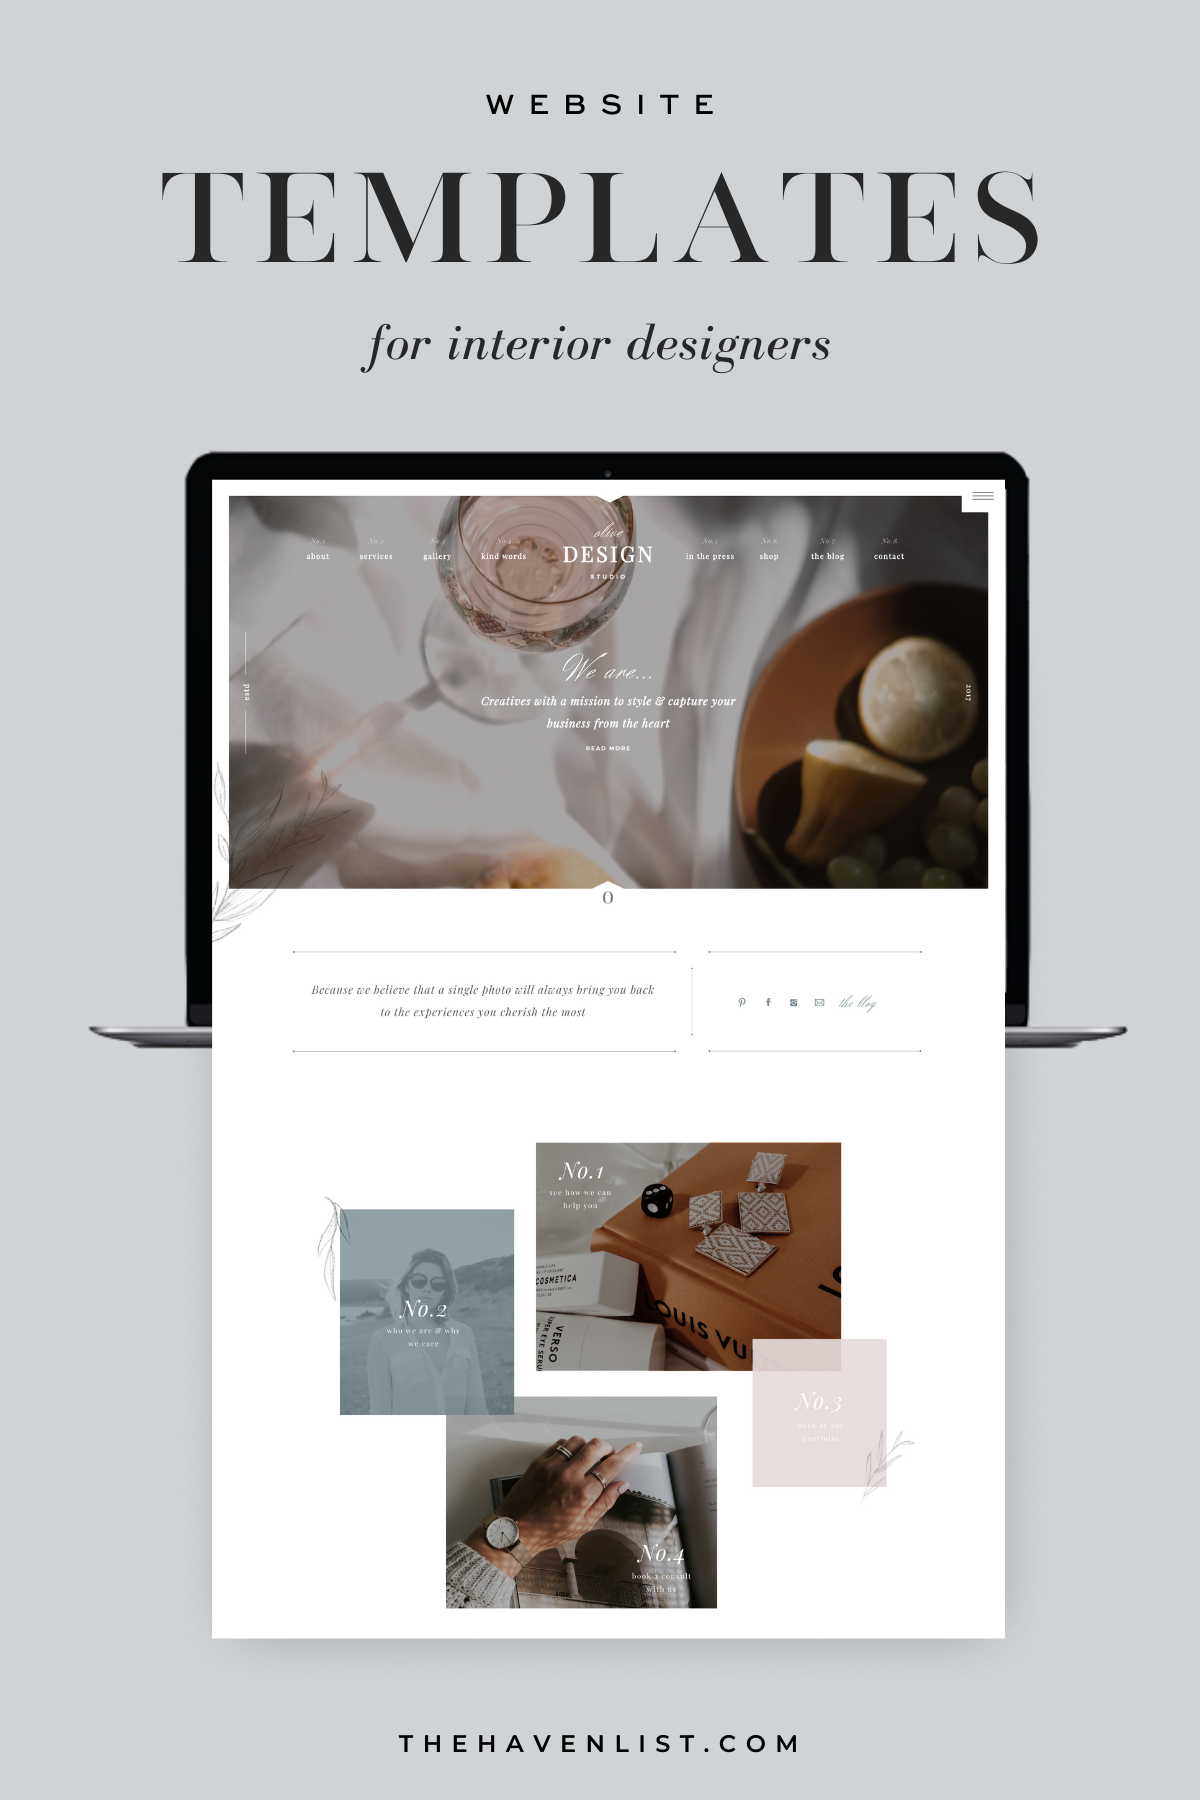 Easy-To-Edit Showit Website Templates and Customizable Website Templates for Interior Designers and Creatives - Stylish Social Media Templates, Website Content Planner & Guide, Showit Website Template, Saffron Avenue, The Haven List, Olive